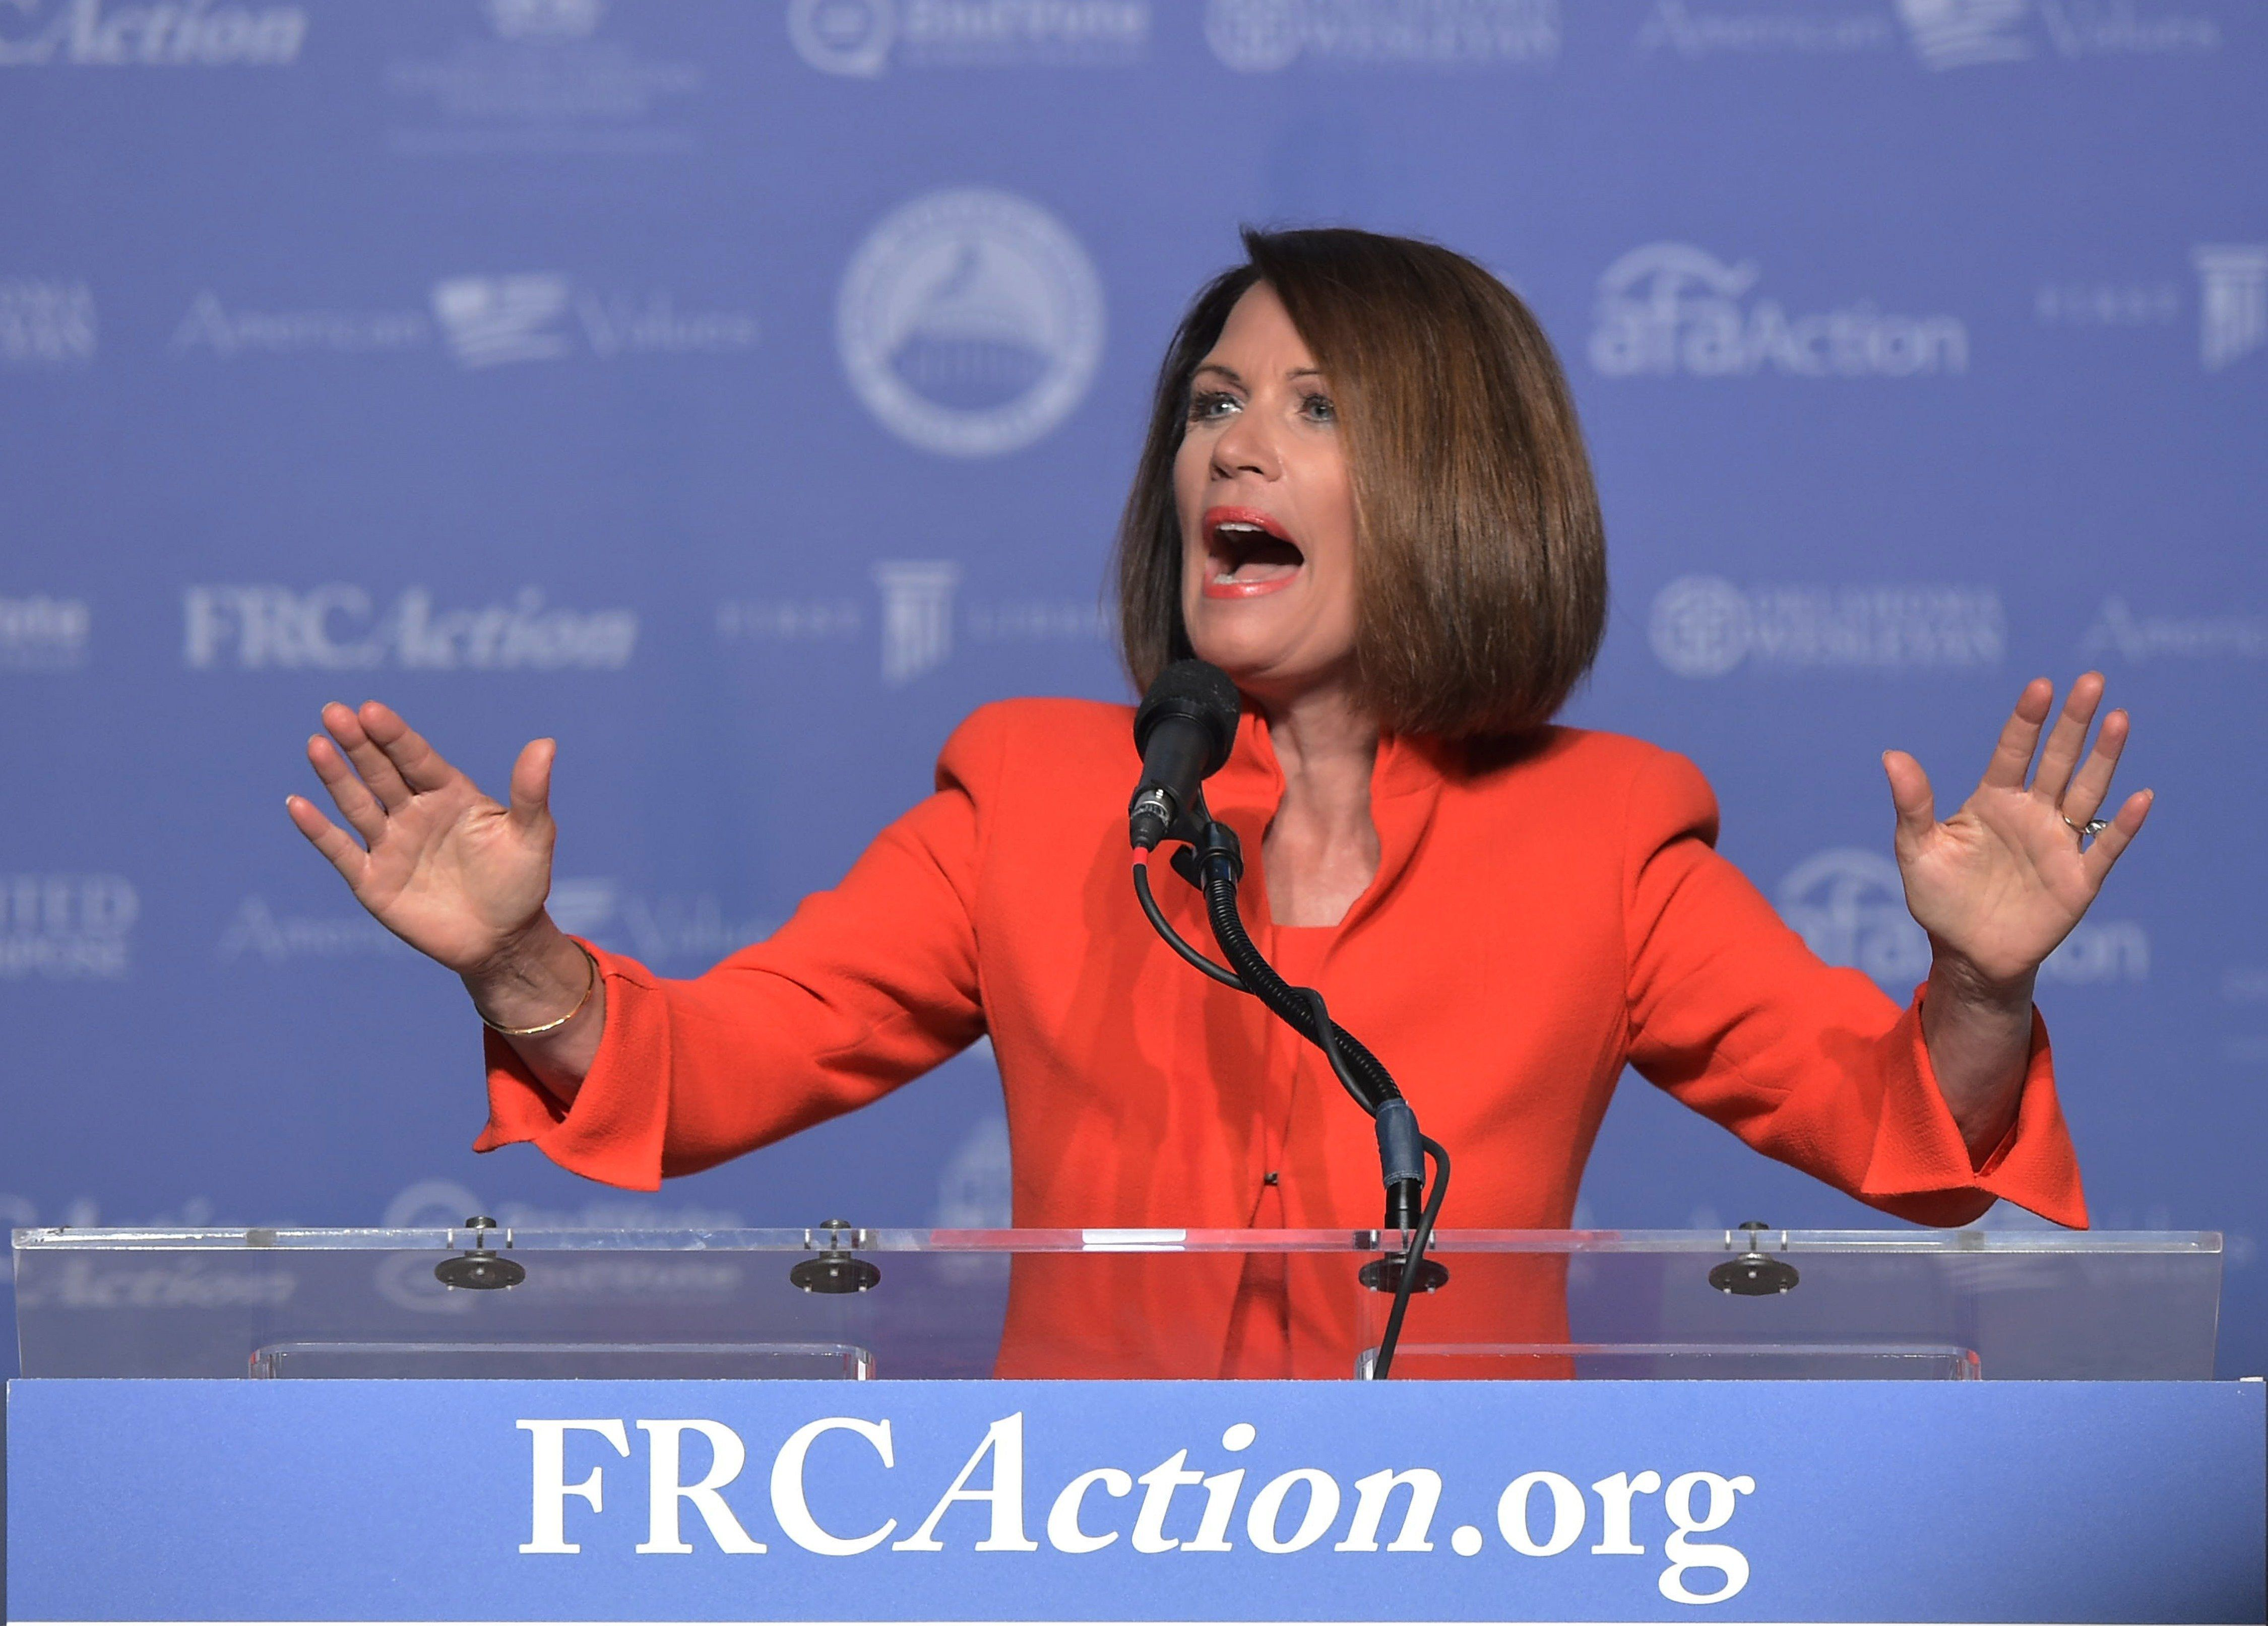 Former member of the US Congress Michele Bachmann speaks during the 11th annual Values Voter Summit at a hotel in Washington, DC, on September 9, 2016. / AFP / MANDEL NGAN        (Photo credit should read MANDEL NGAN/AFP/Getty Images)